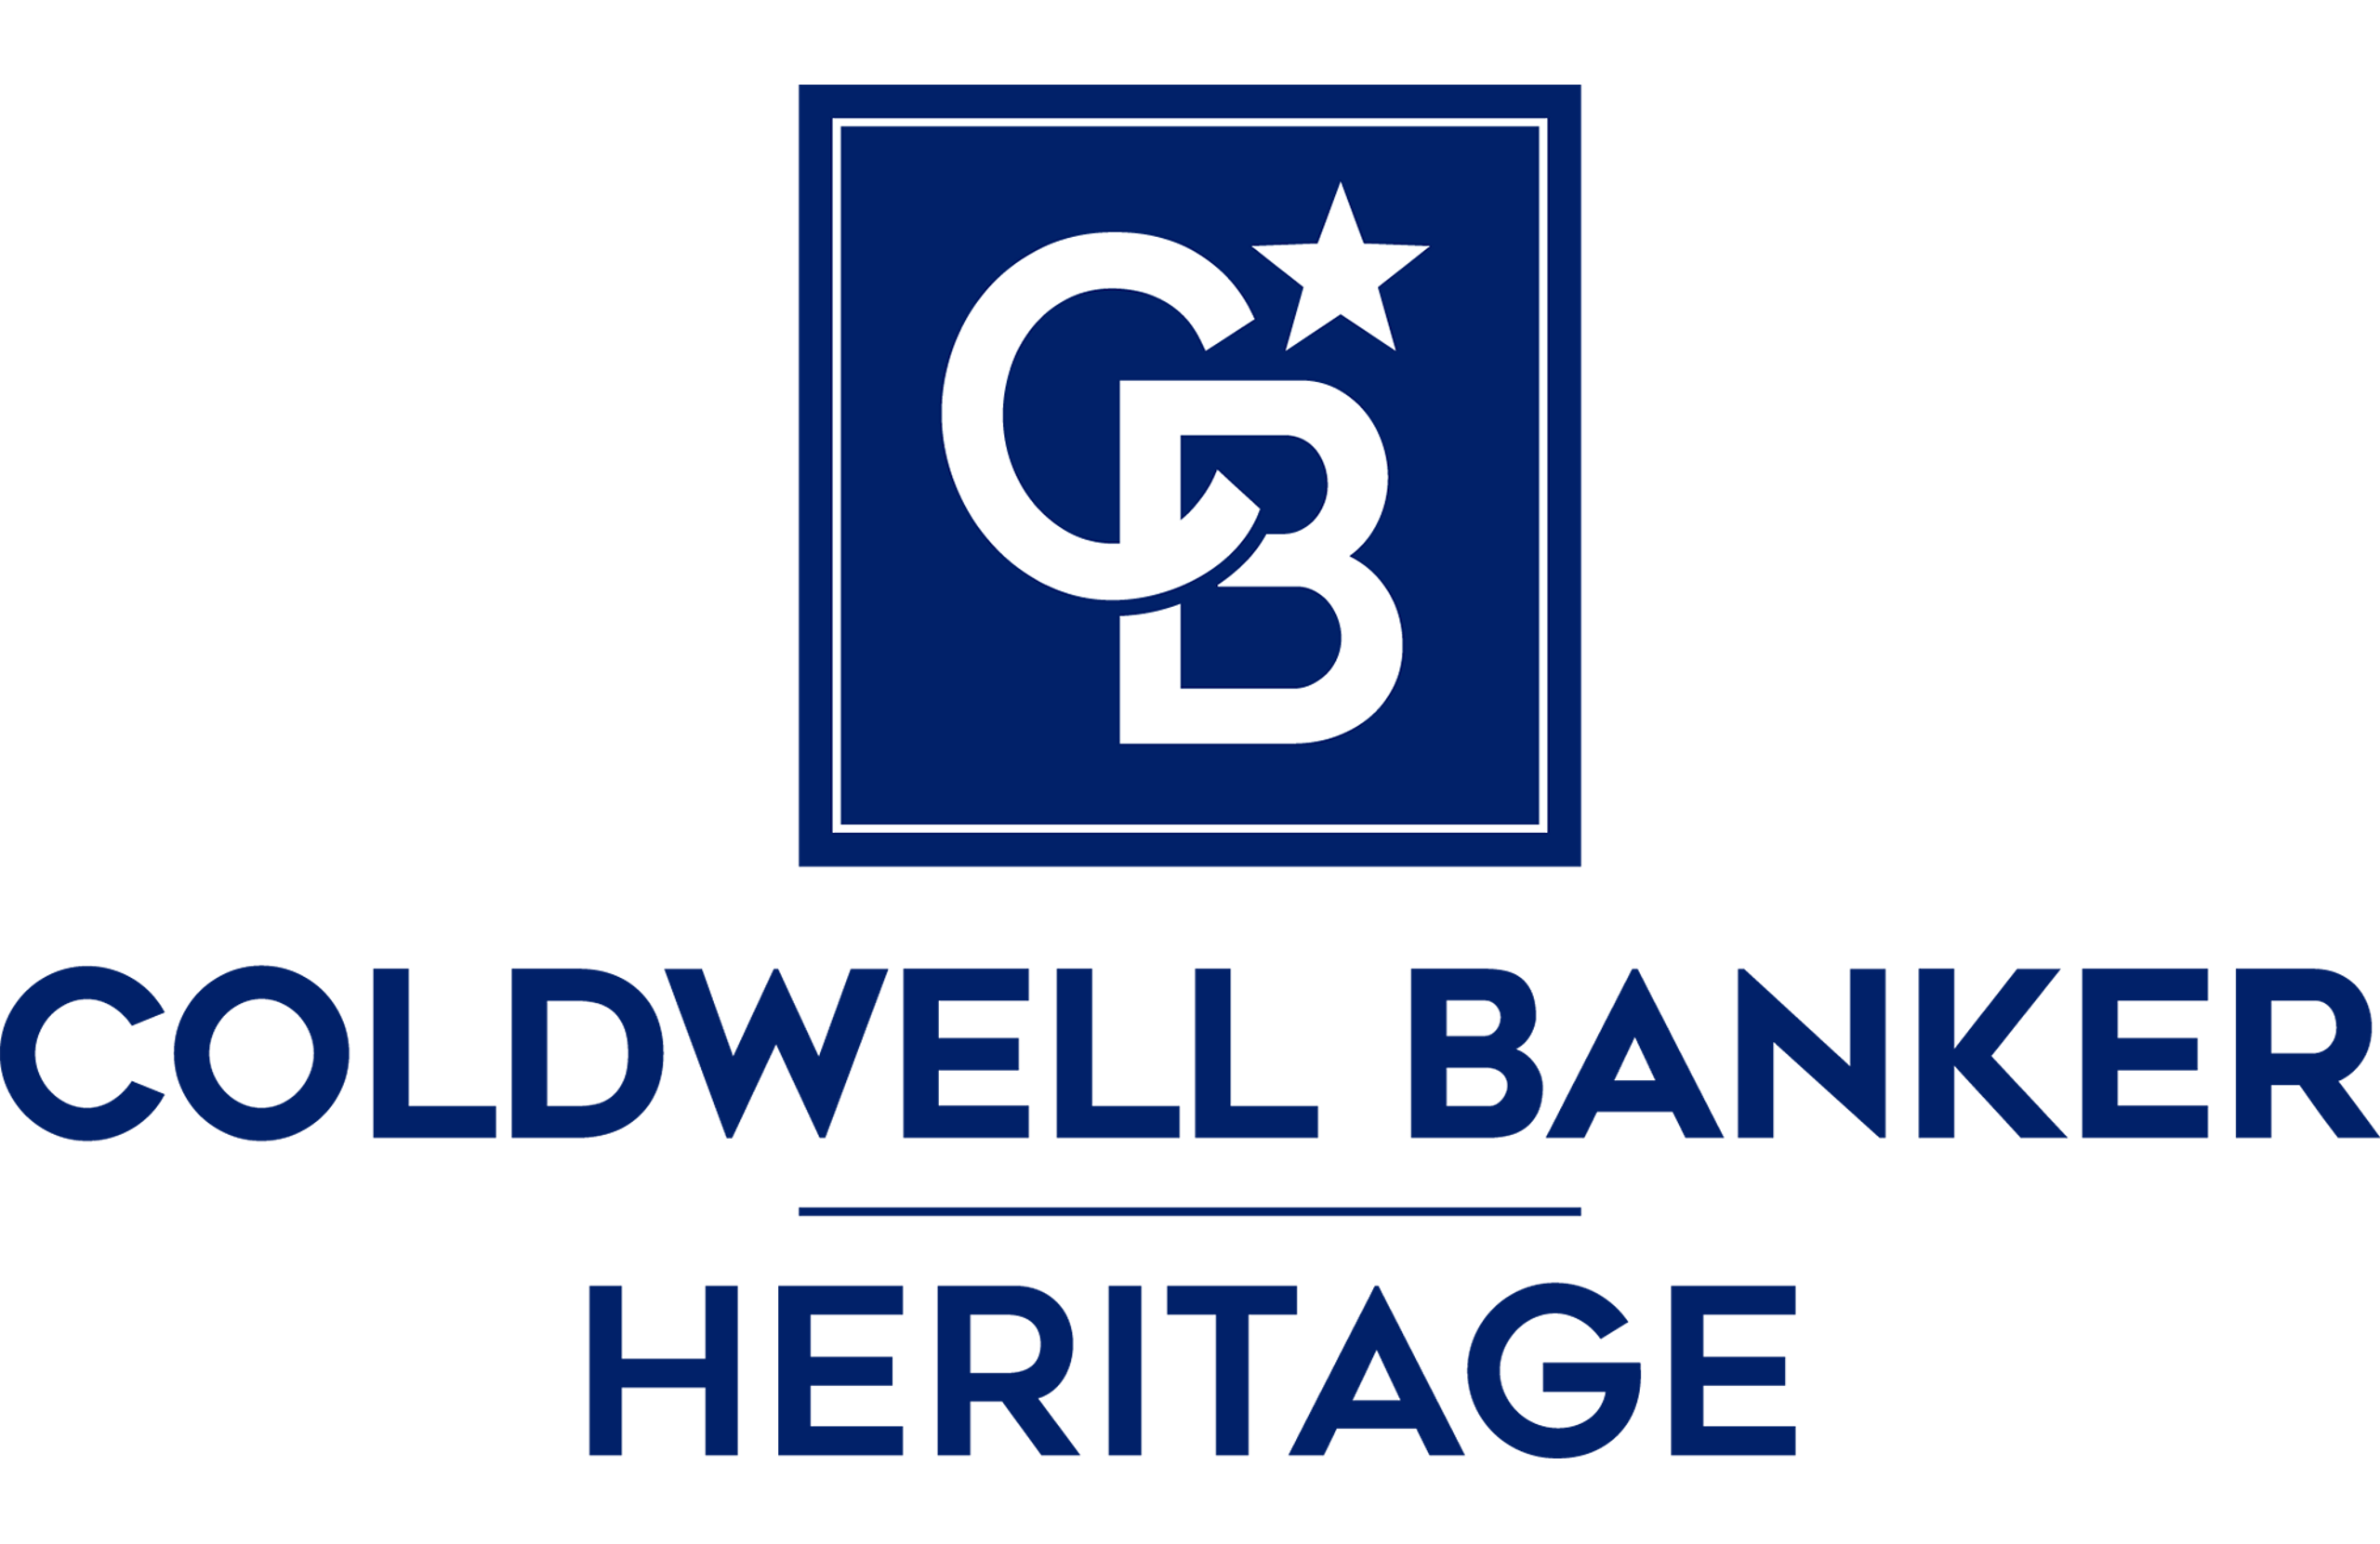 Laura Bettinger - Coldwell Banker Heritage